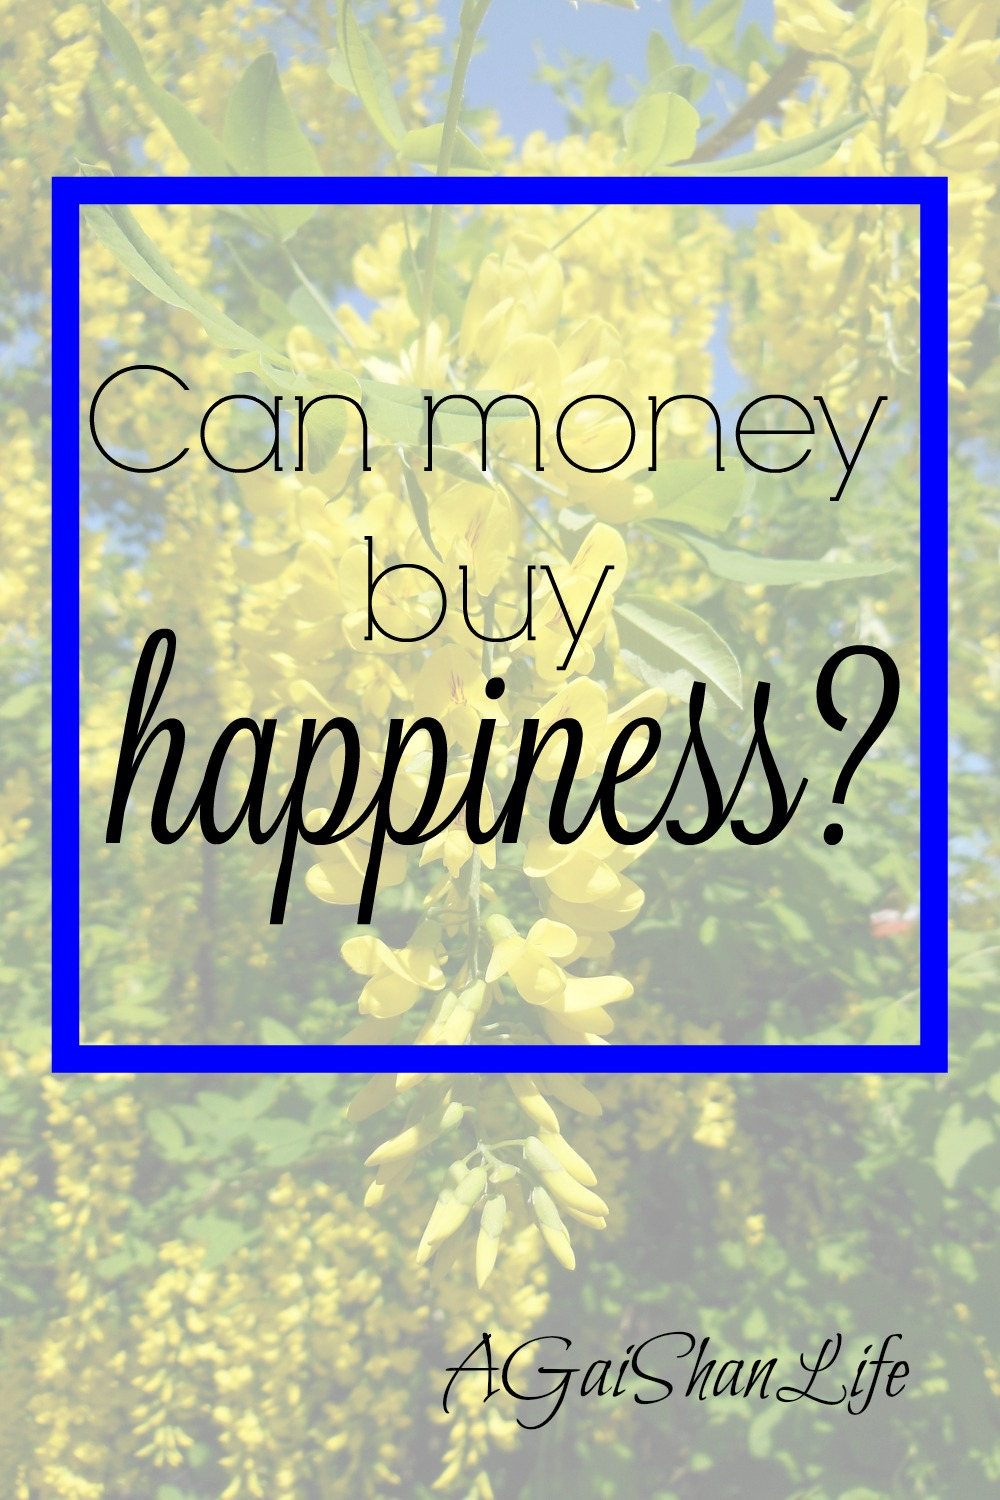 Can money buy happiness? Yes. But it can't buy some of those others things that are so essential to happiness.